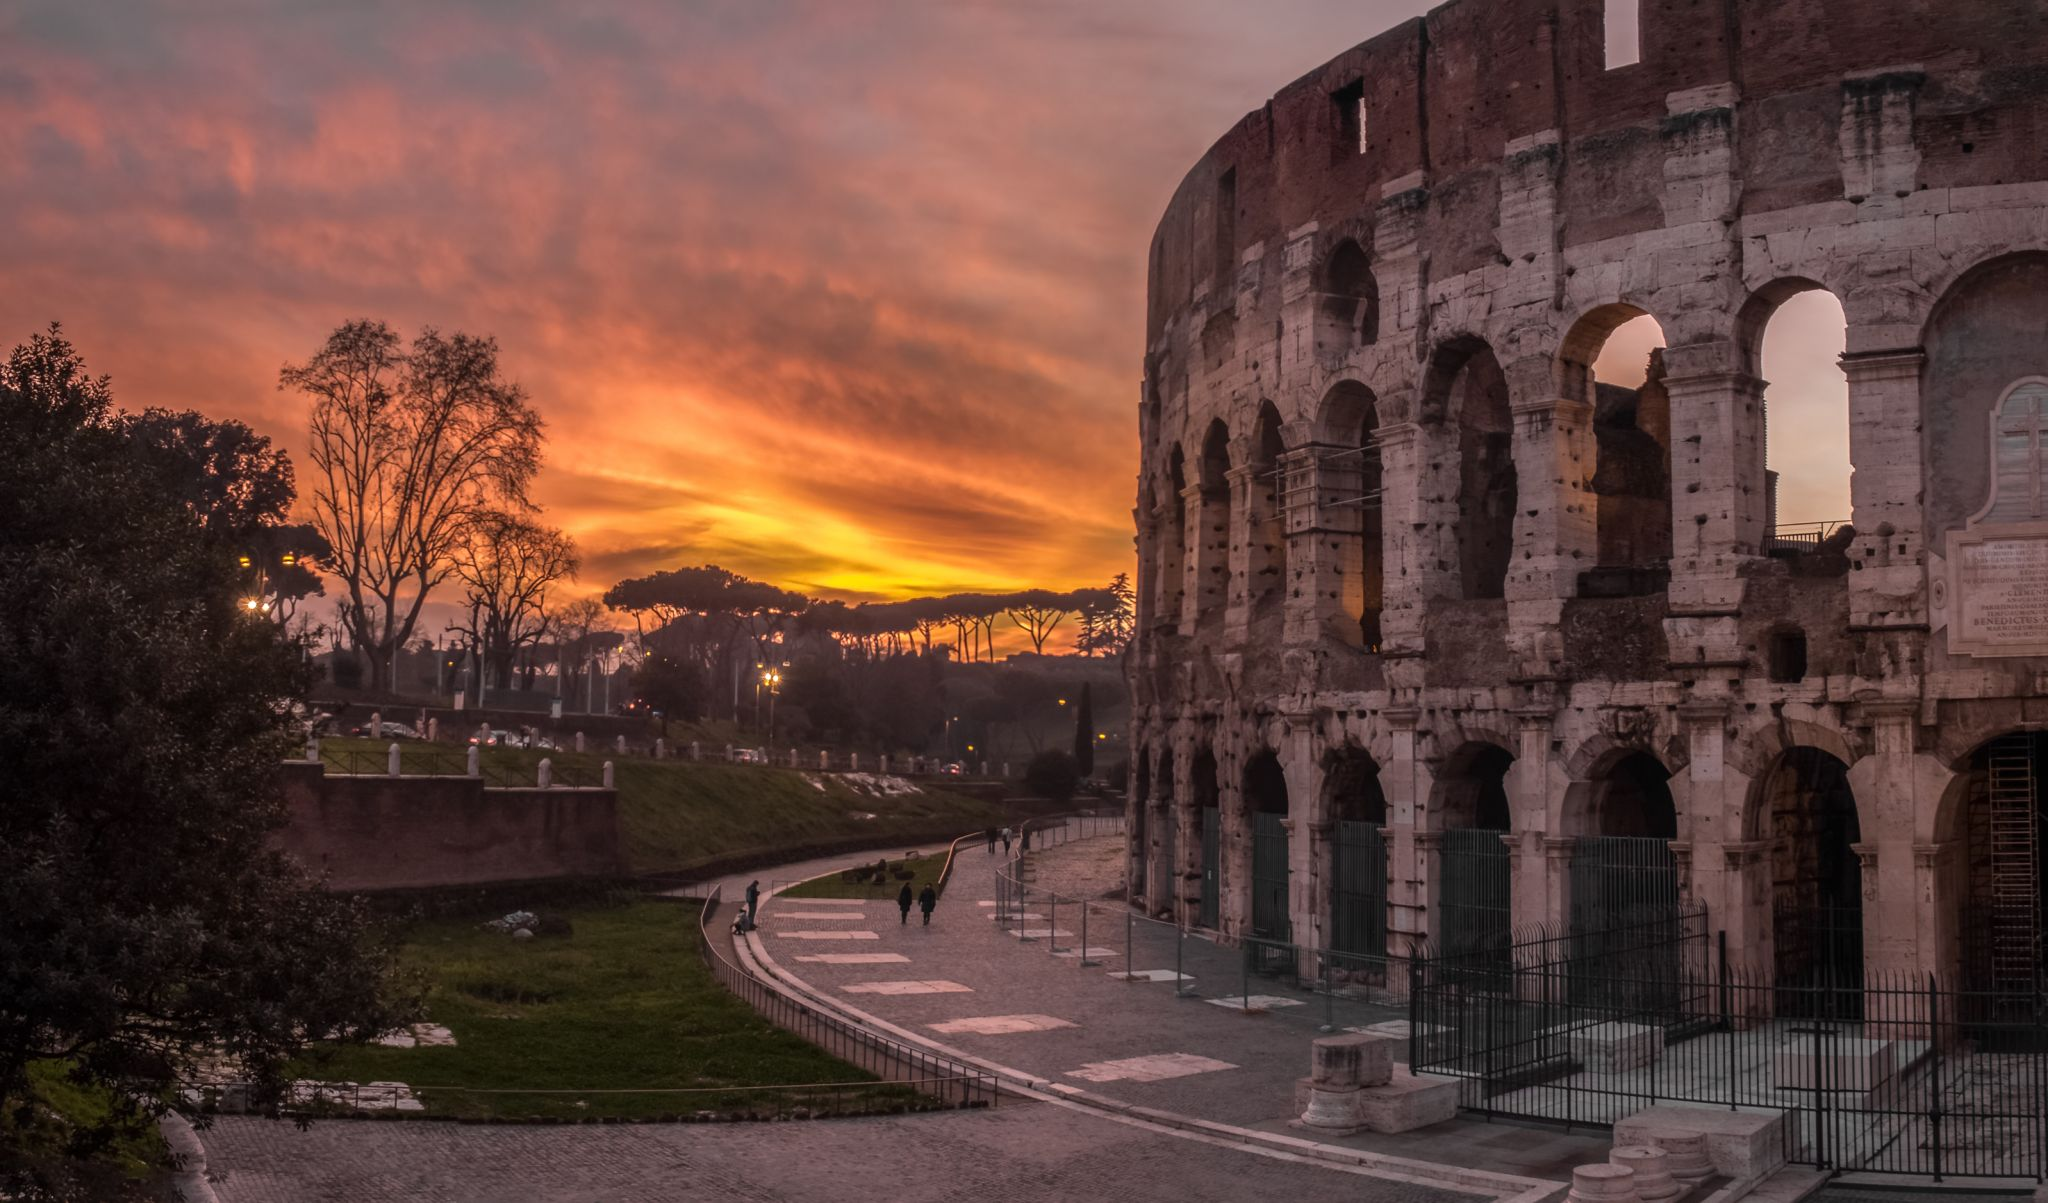 Colosseum at sunset, Italy